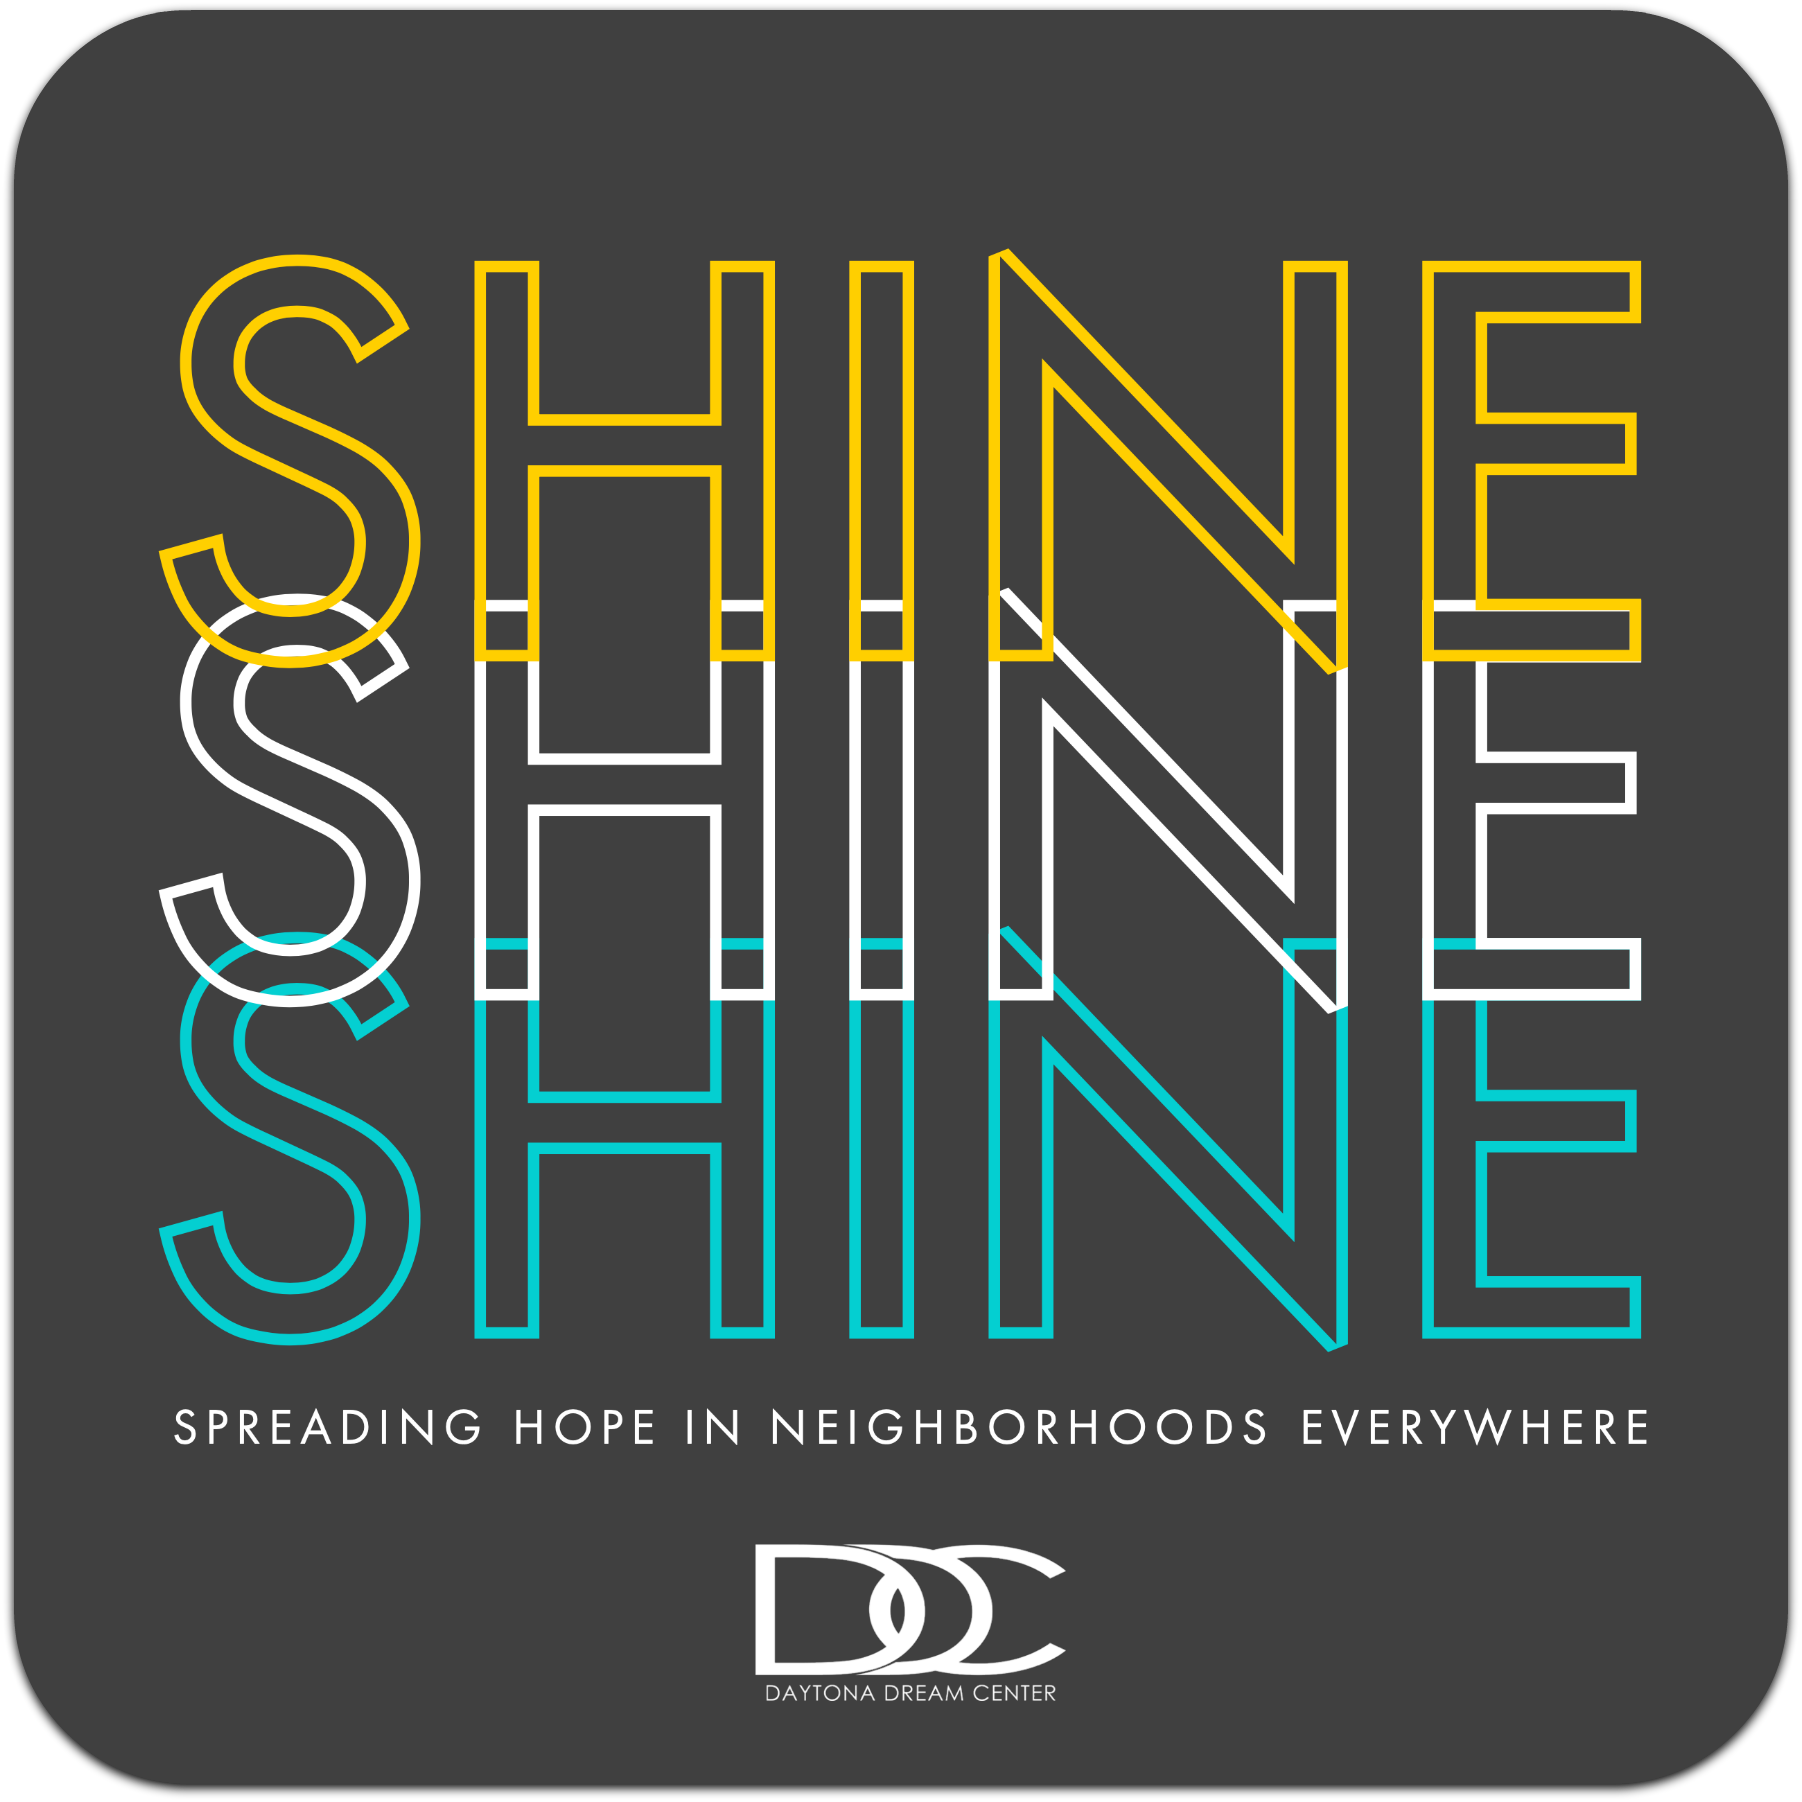 Daytona Dream Center - Shine